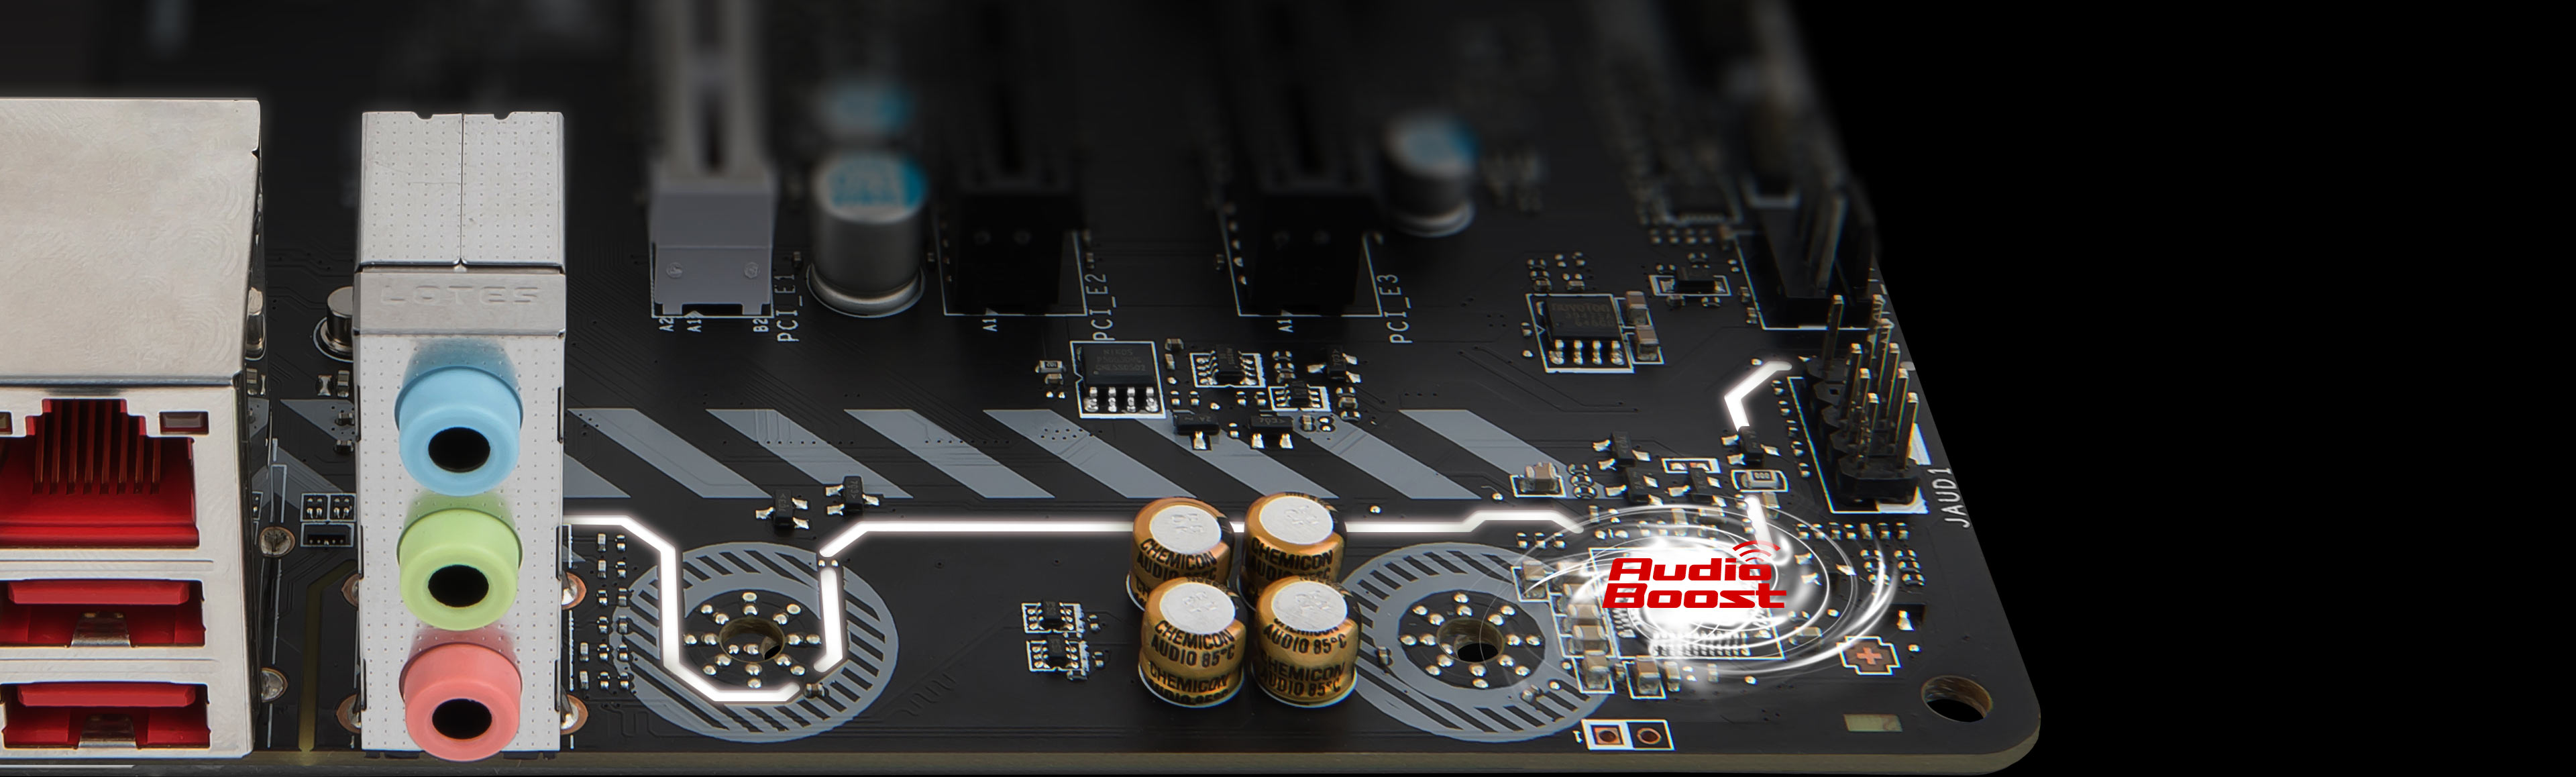 B350m Bazooka Motherboard The World Leader In Design Led Christmas Light Flasher Circuit Is Controlled By Audio